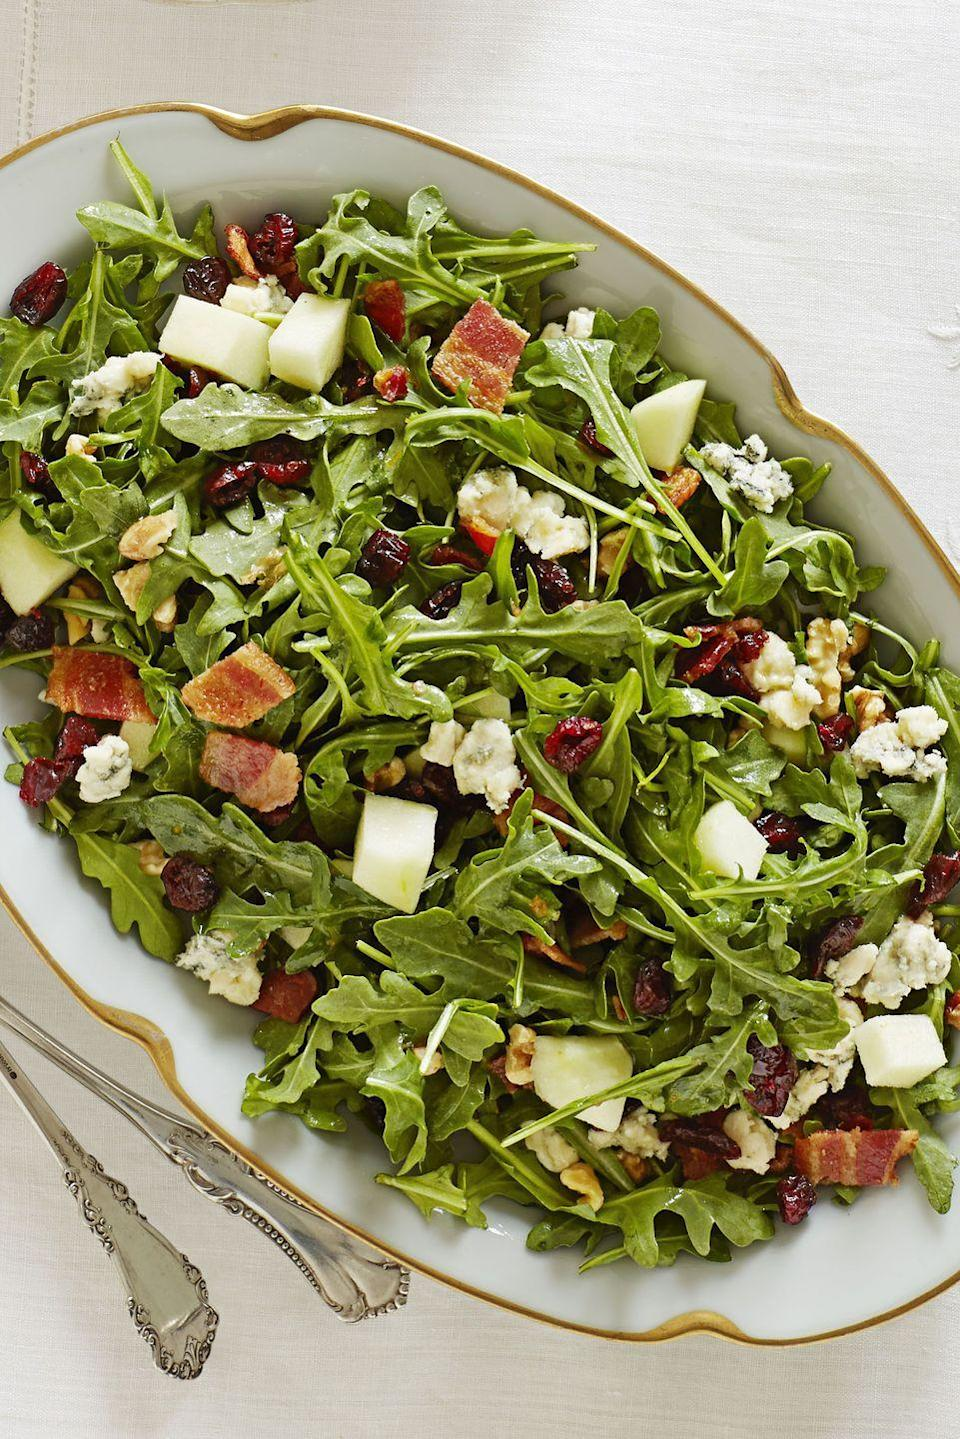 """<p>Bacon and blue cheese give this salad an exciting twist, while the orange dressing, arugula and apples keep it lively and fresh.</p><p><em><a href=""""https://www.goodhousekeeping.com/food-recipes/a11597/cape-cod-chopped-salad-recipe-ghk1113/"""" rel=""""nofollow noopener"""" target=""""_blank"""" data-ylk=""""slk:Get the recipe for Cape Cod Chopped Salad »"""" class=""""link rapid-noclick-resp"""">Get the recipe for Cape Cod Chopped Salad »</a></em> </p>"""